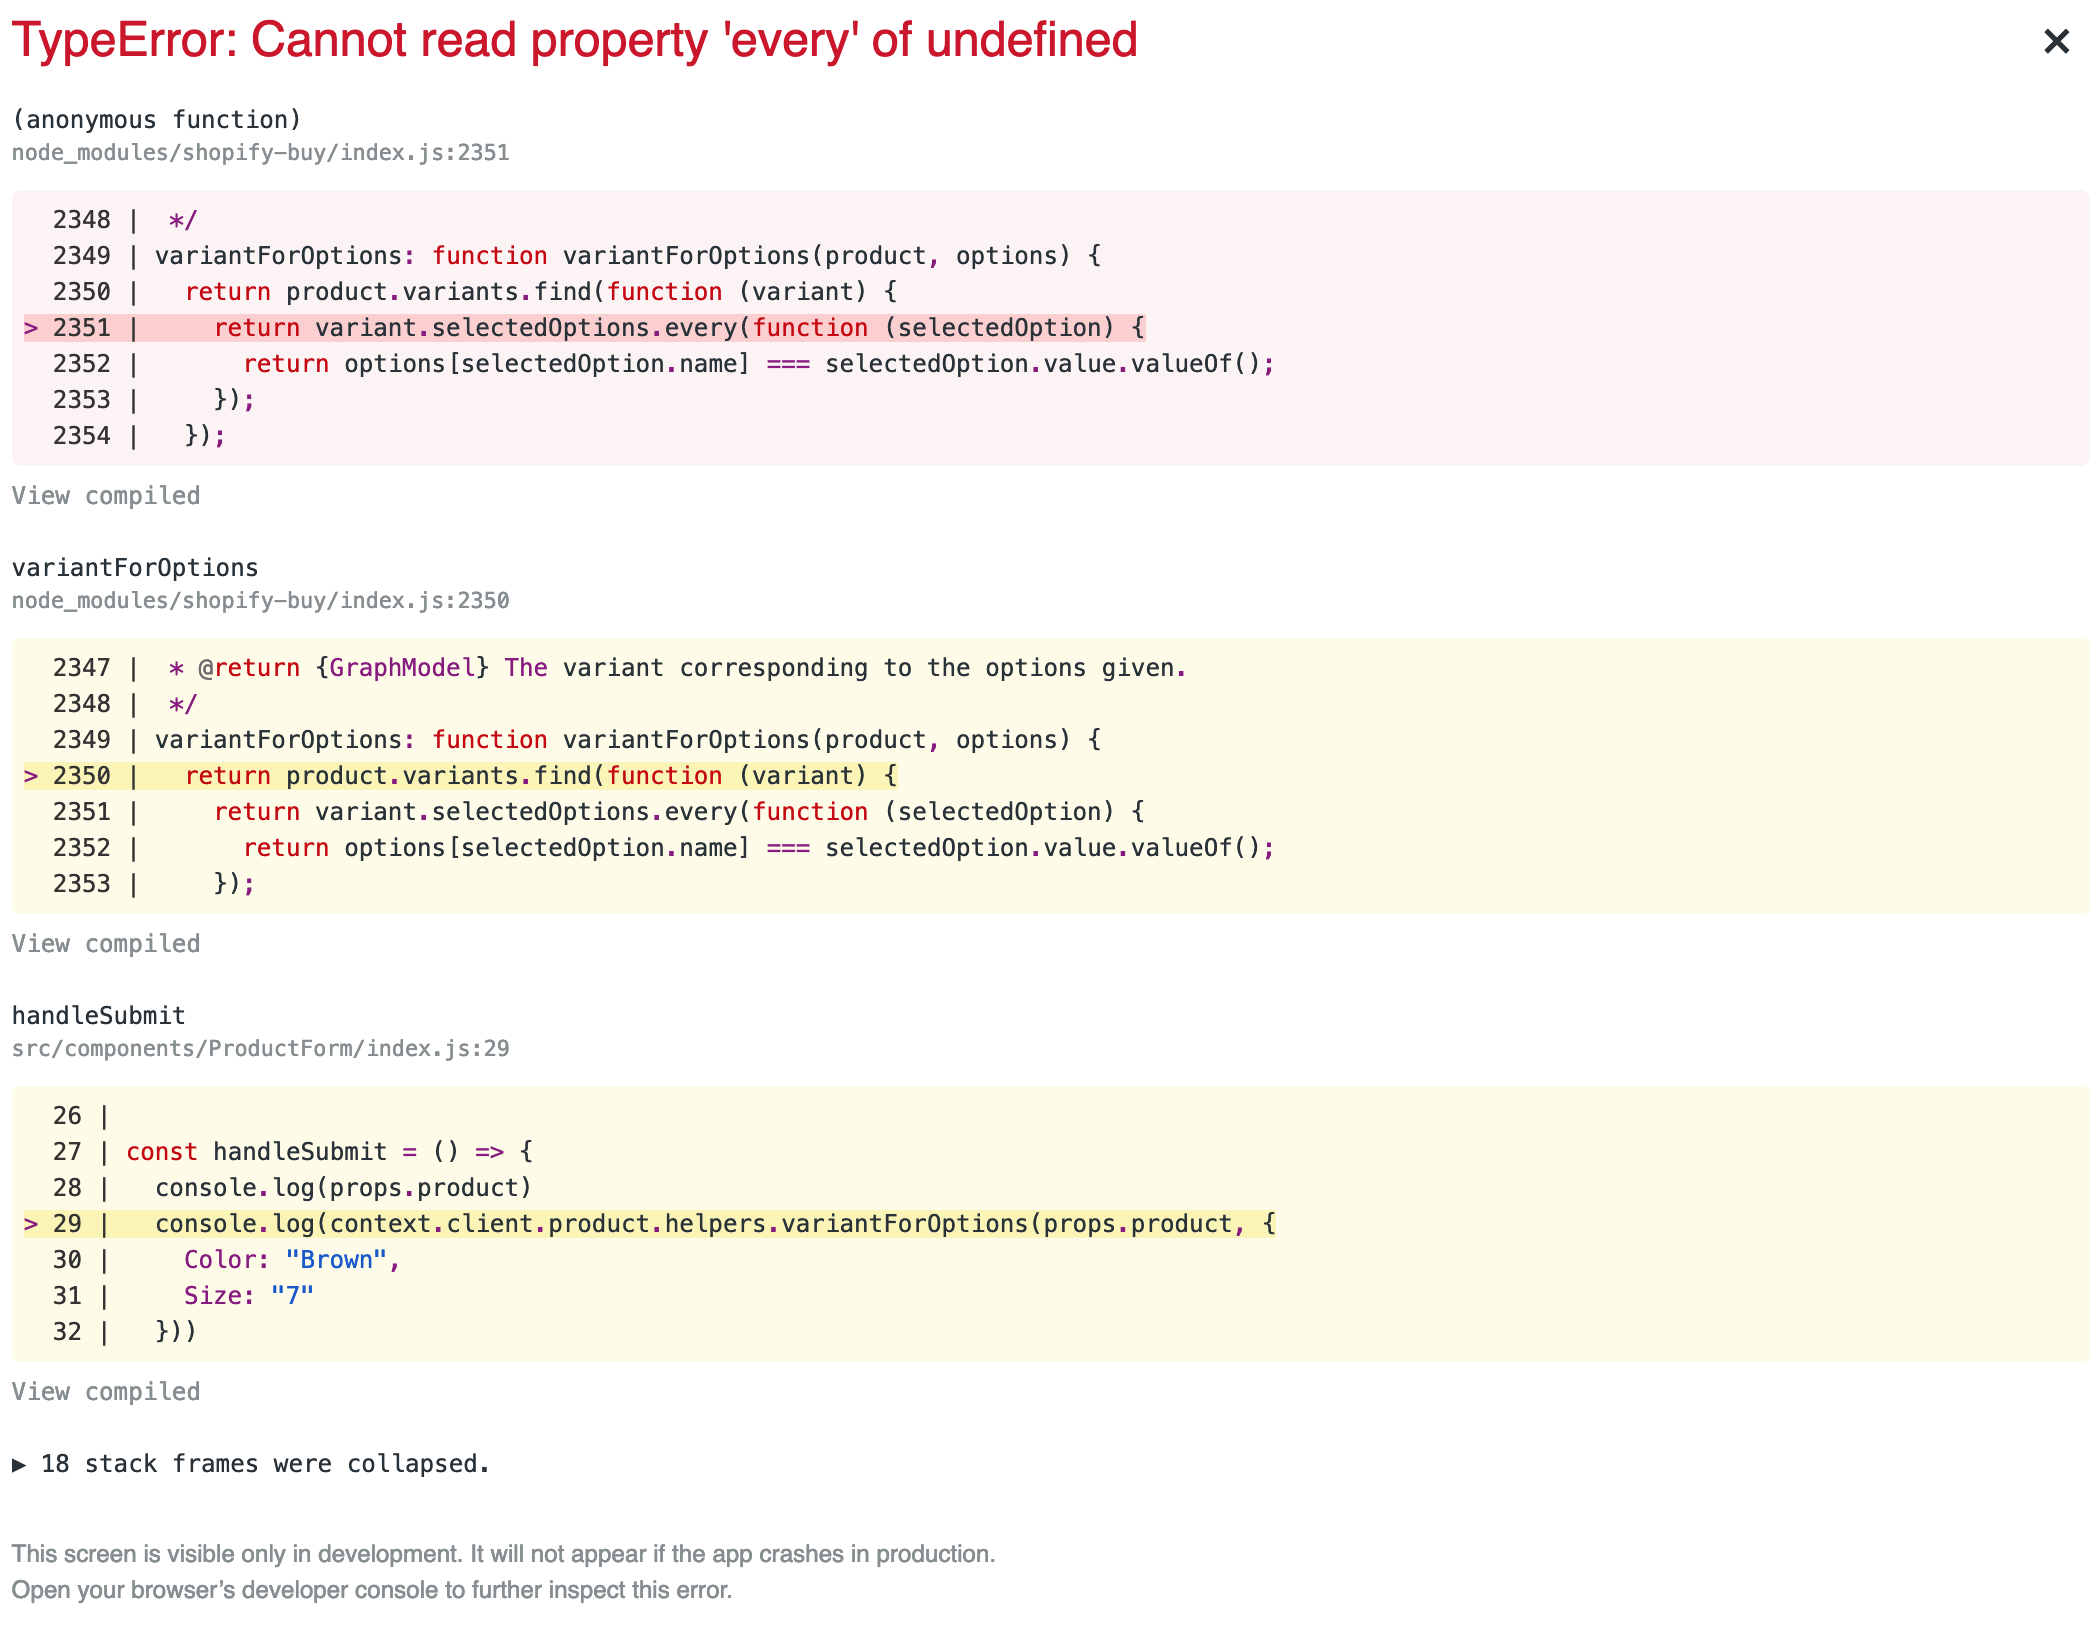 variantForOptions throws Cannot read property 'every' of undefined